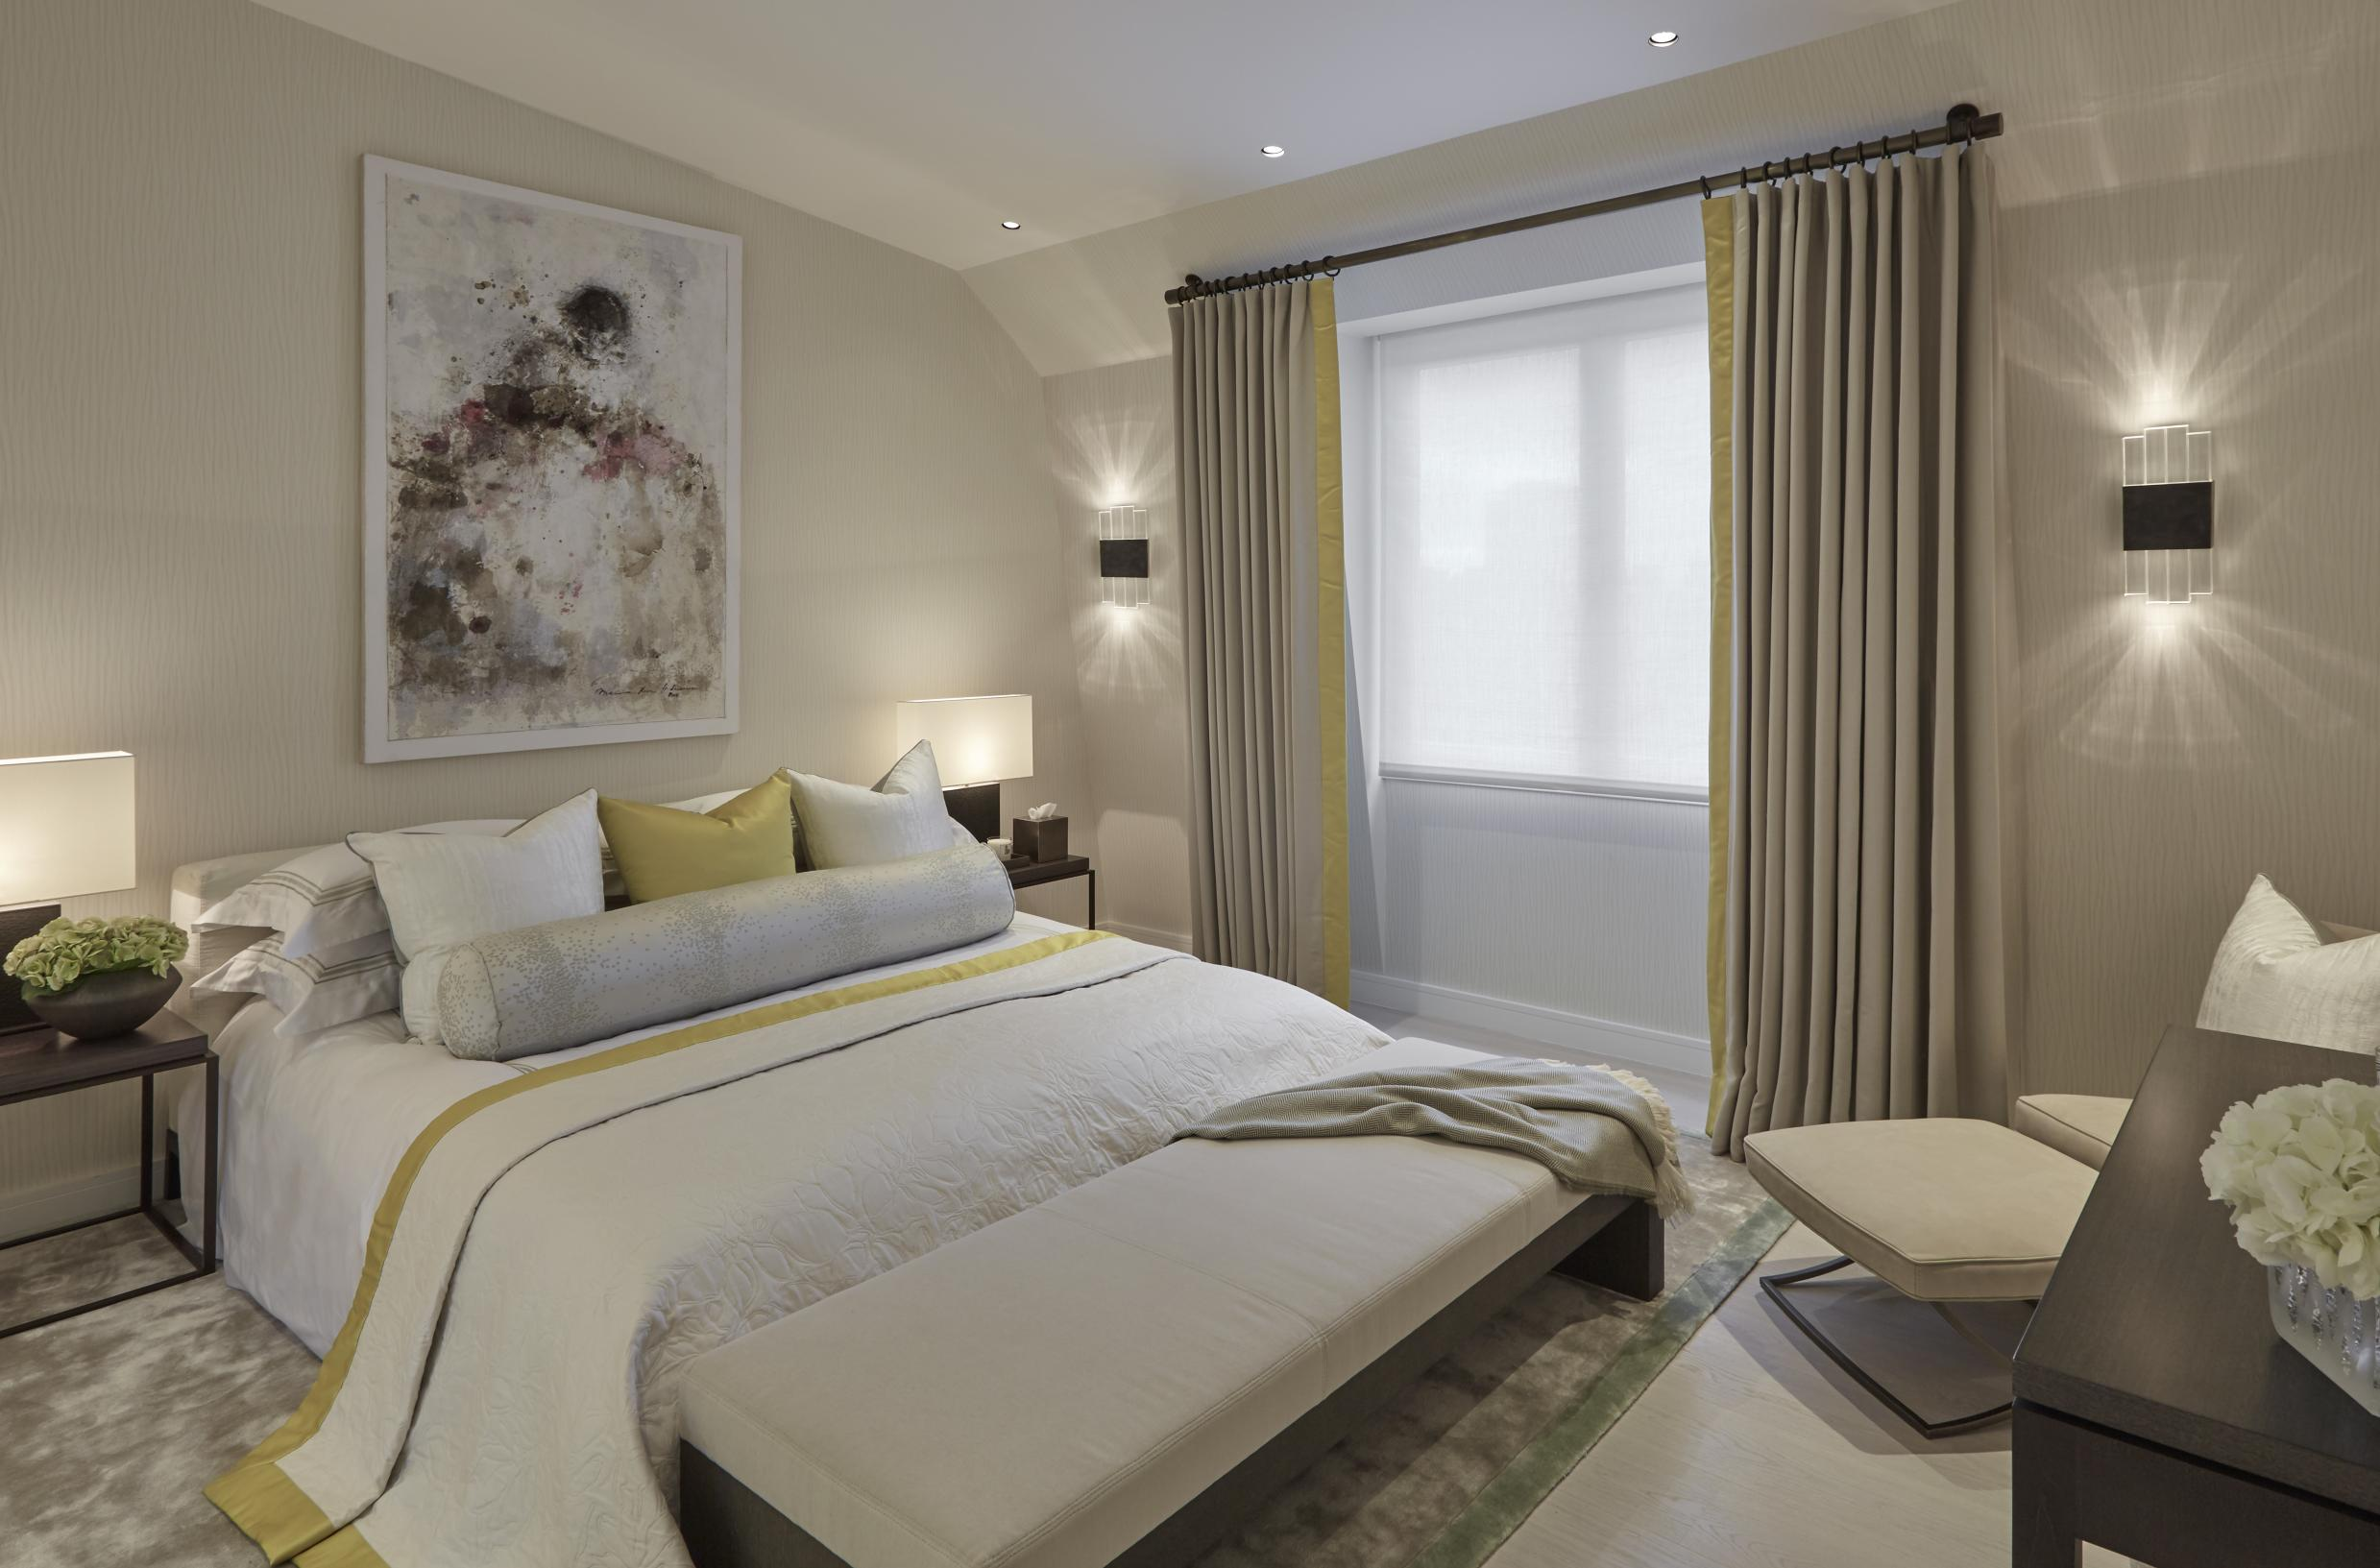 Bedroom Design Ideas And Colour Combos To Get Inspired By (4) bedroom design Bedroom Design Ideas And Colour Combos To Get Inspired By Bedroom Design Ideas And Colour Combos To Get Inspired By 4